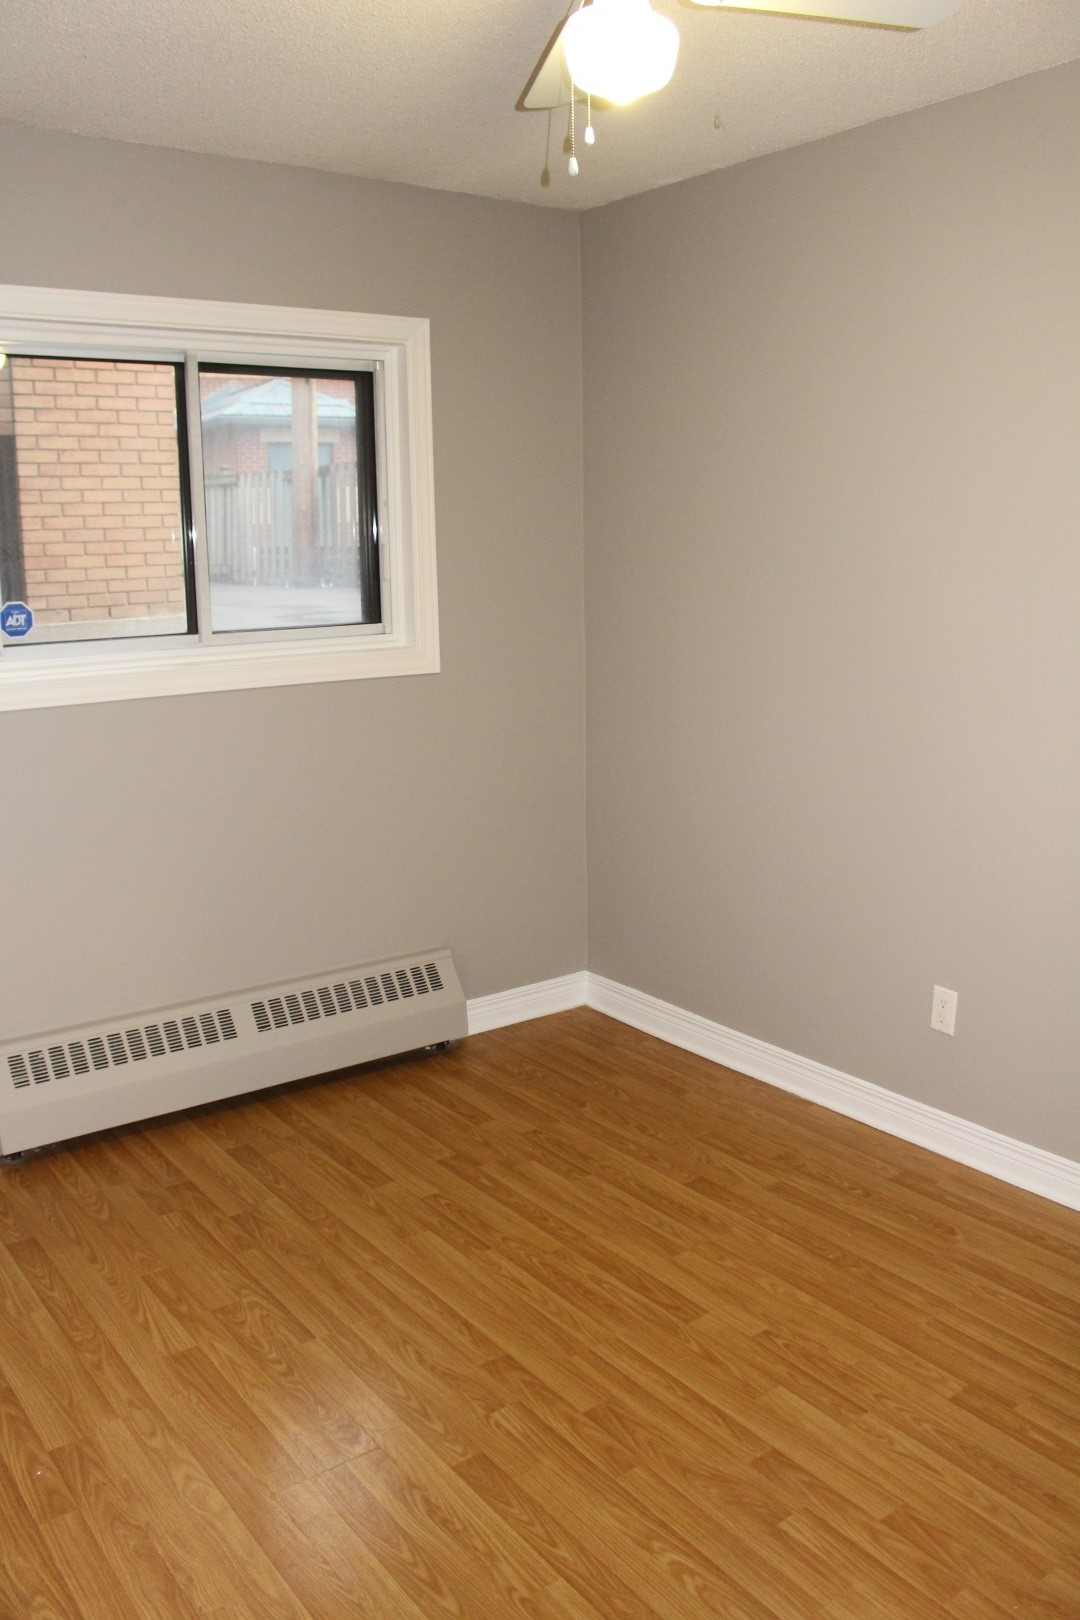 Spacious 2 bedroom rental in Beechwood Village! ** #7D4D1E